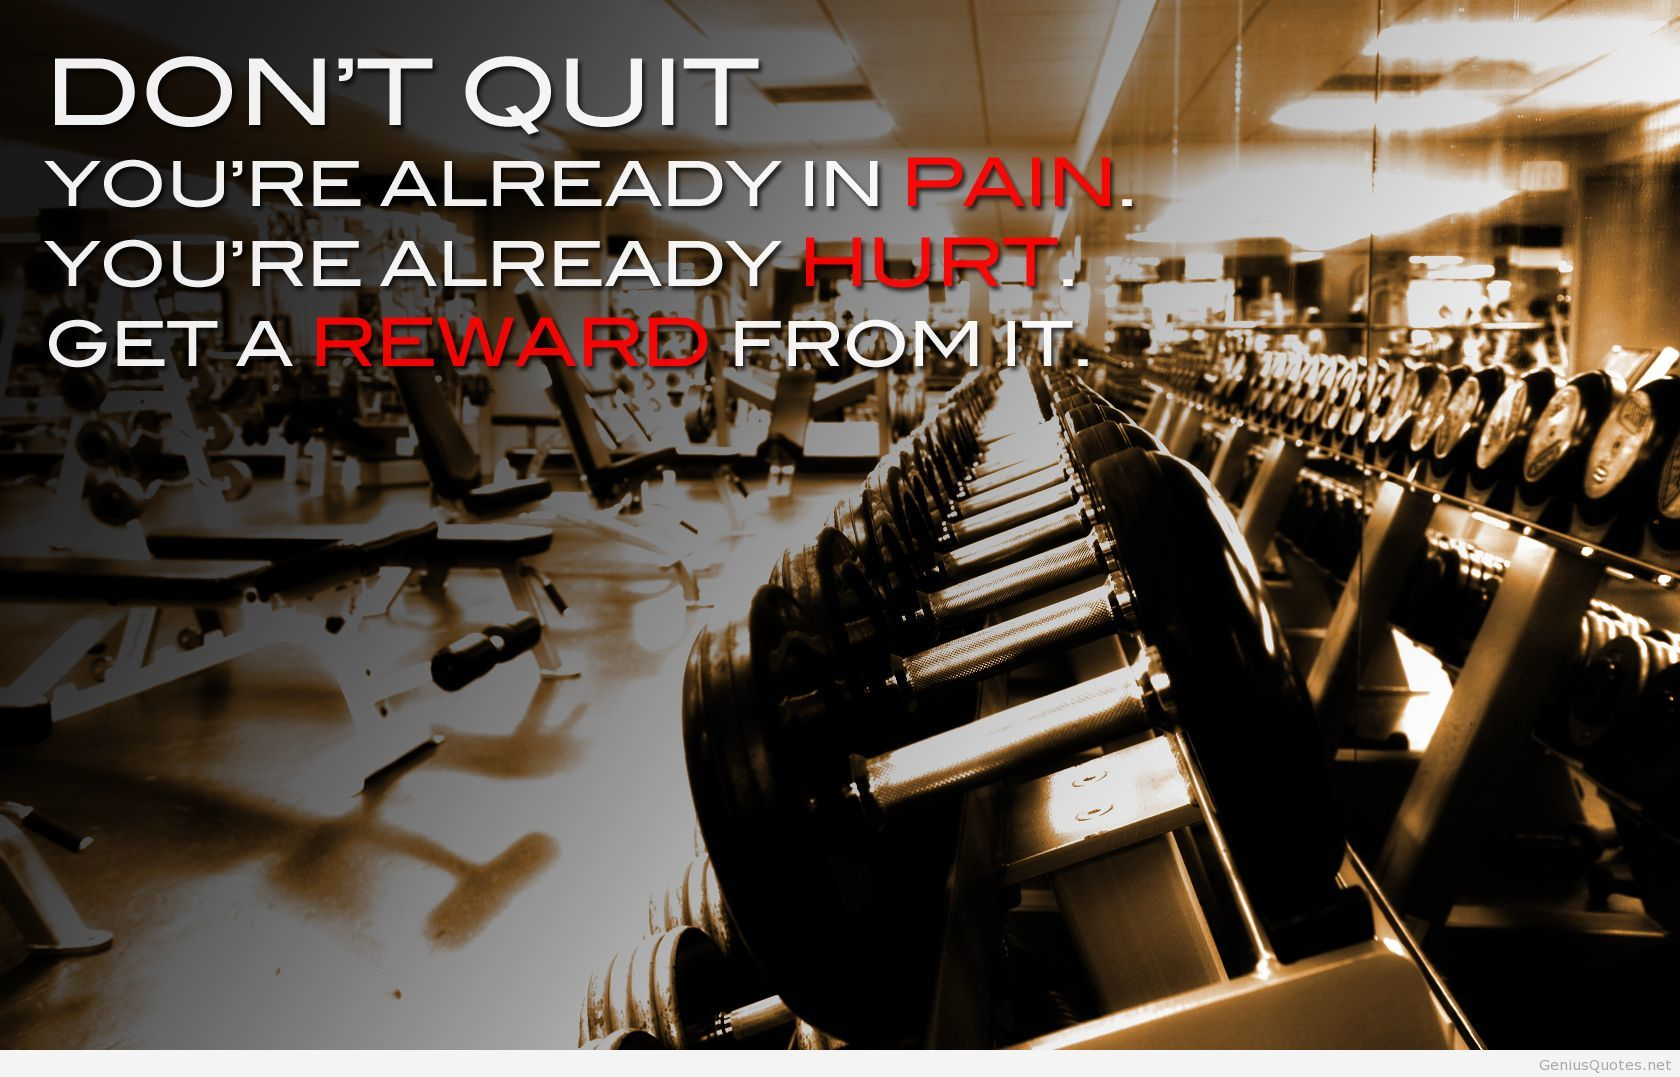 Bodybuilding Motivation Wallpaper Images Src · Top 25 Motivational  Bodybuilding Tumblr Quotes